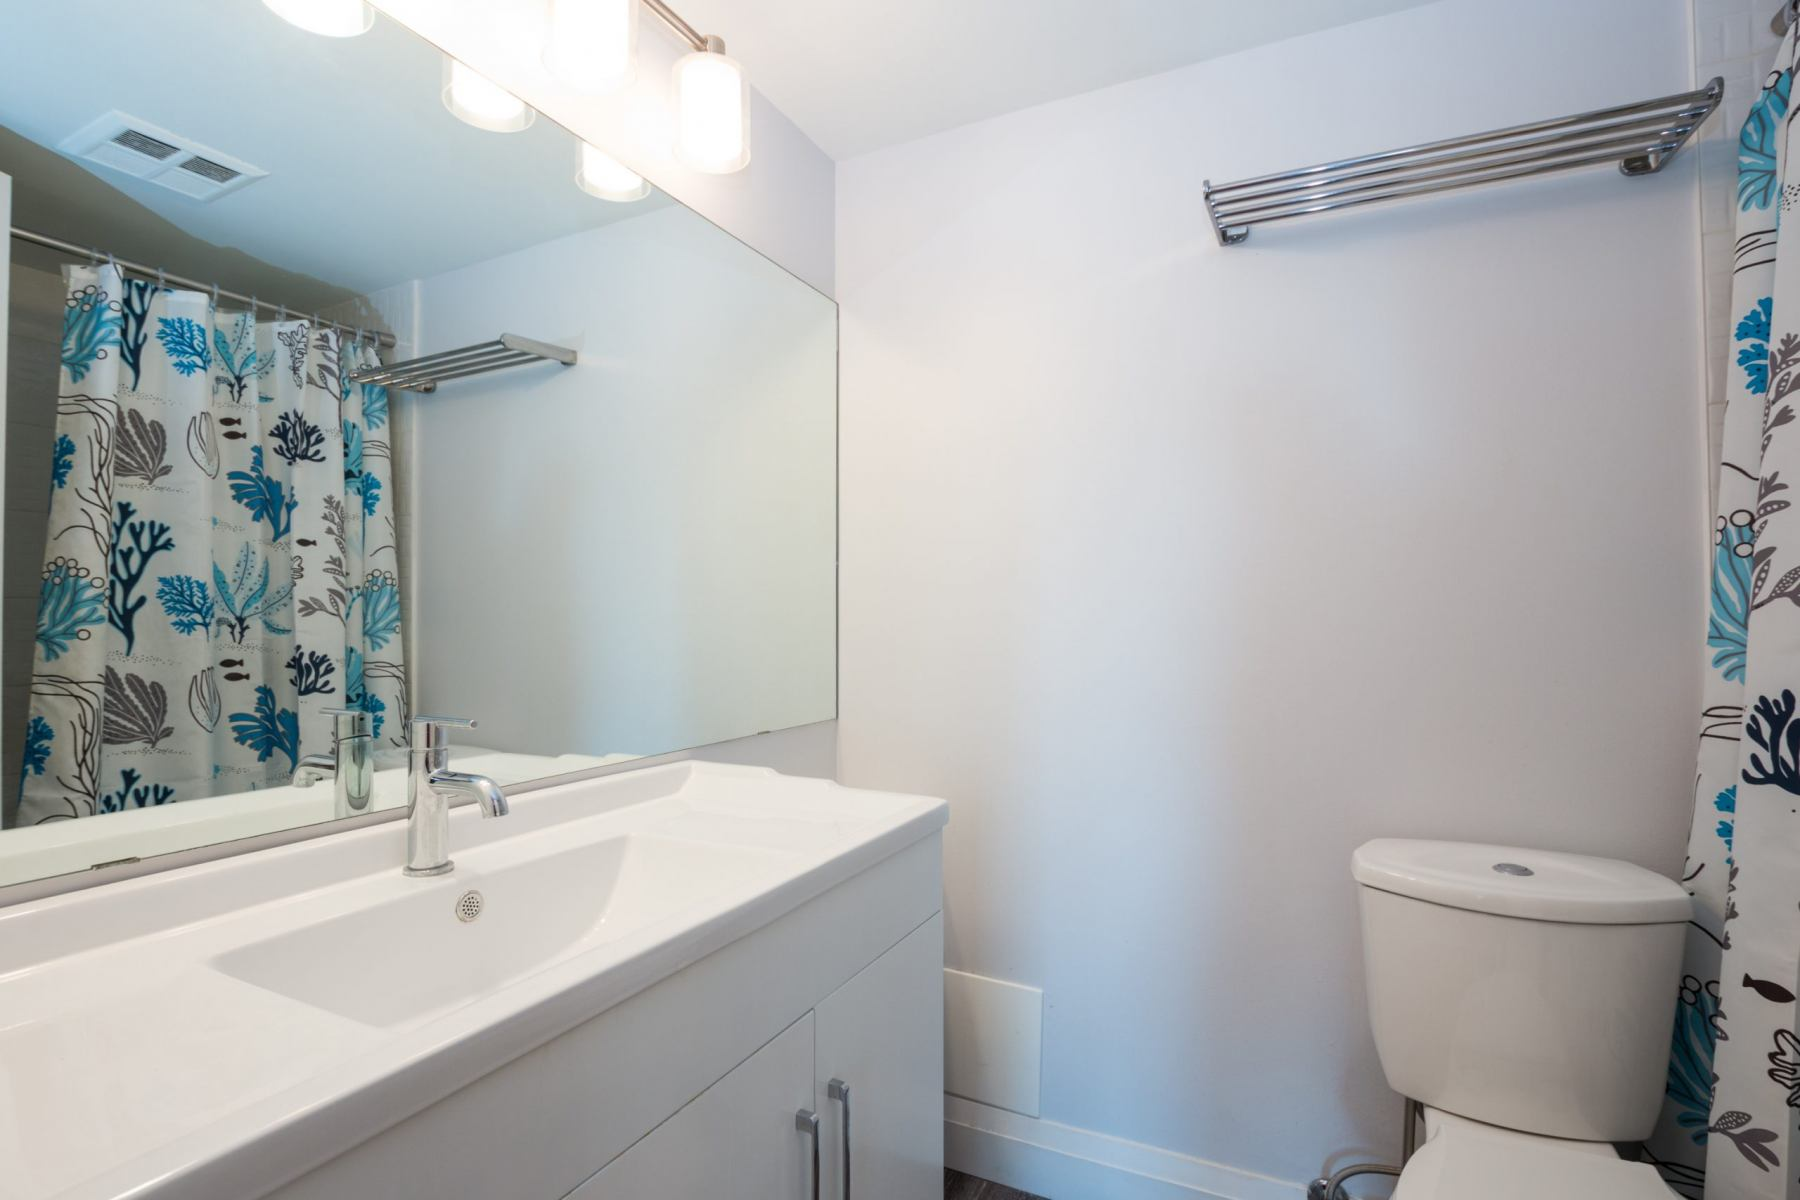 1485 Lakeshore Blvd East - #218 master ensuite